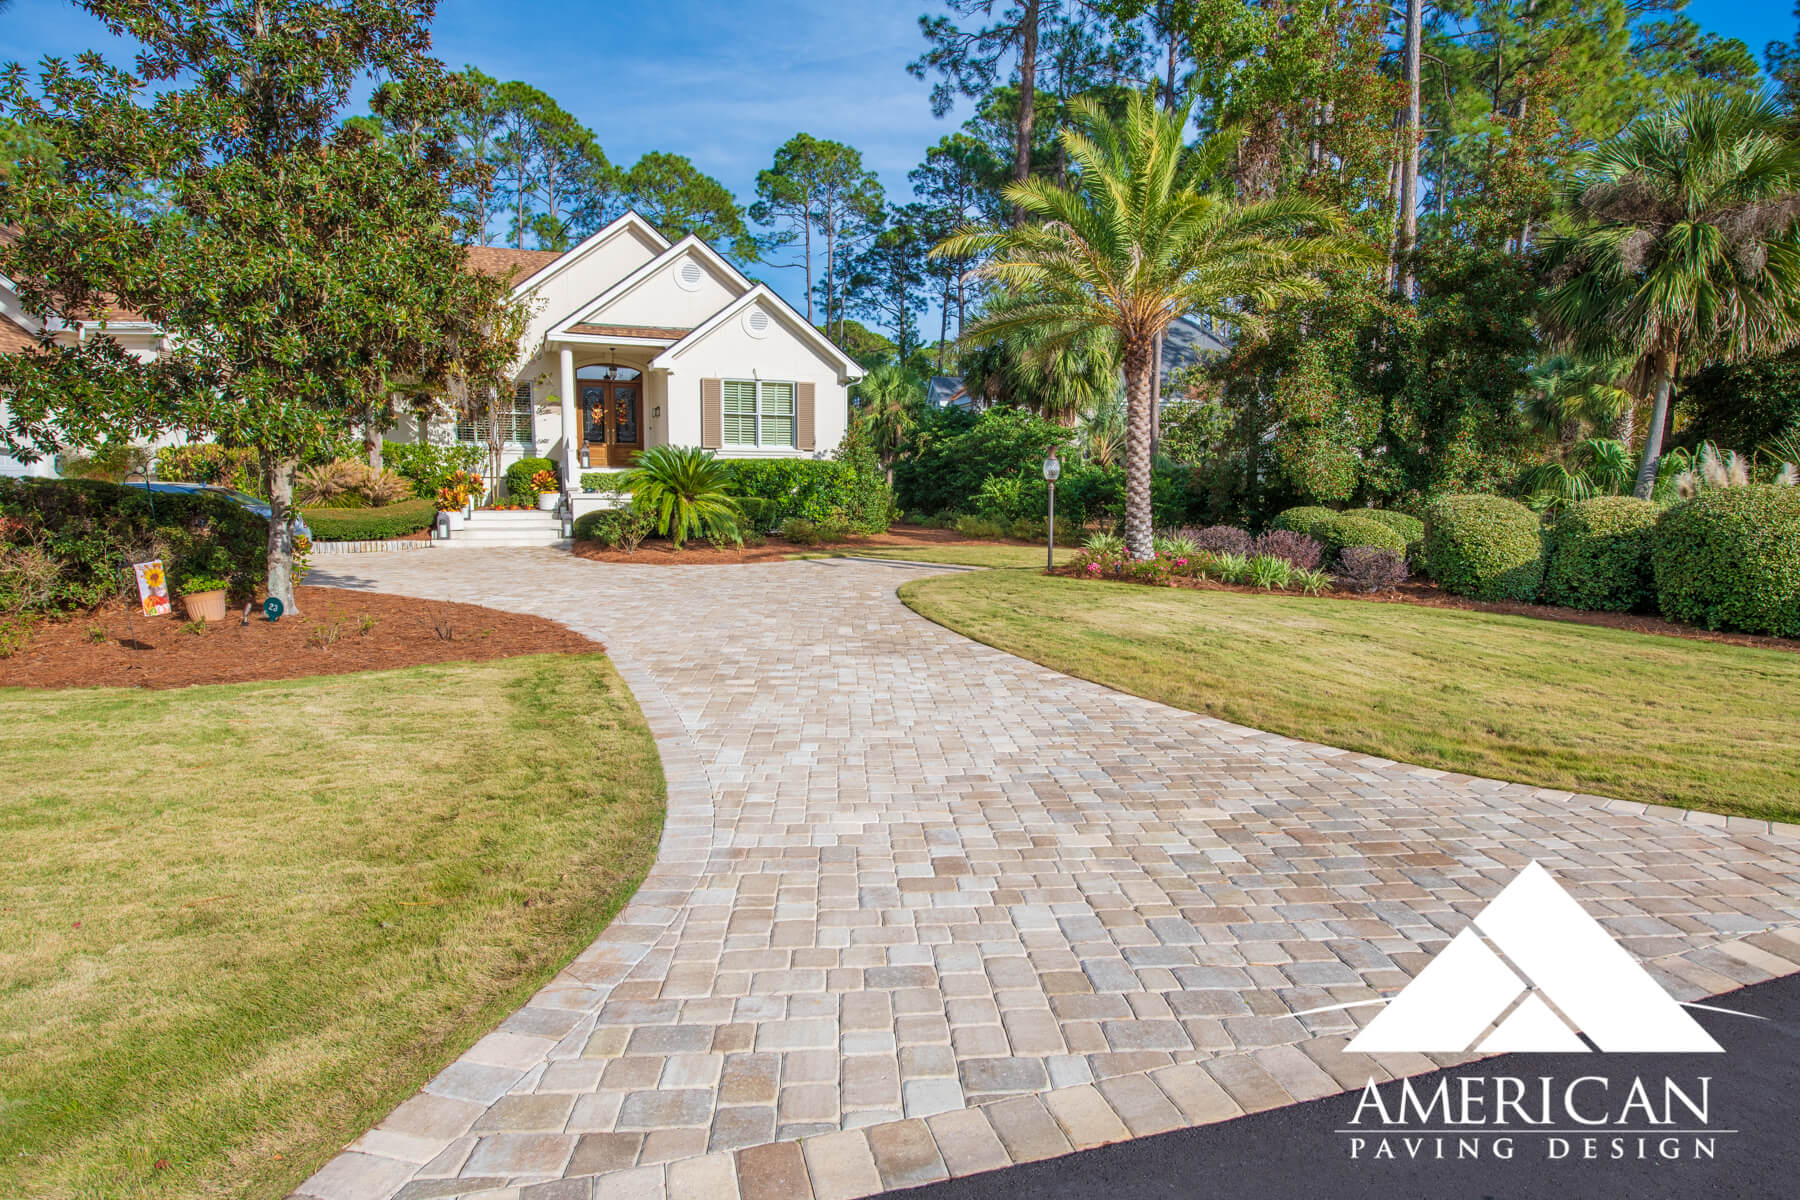 Paver Driveway Cost & Installation Ideas